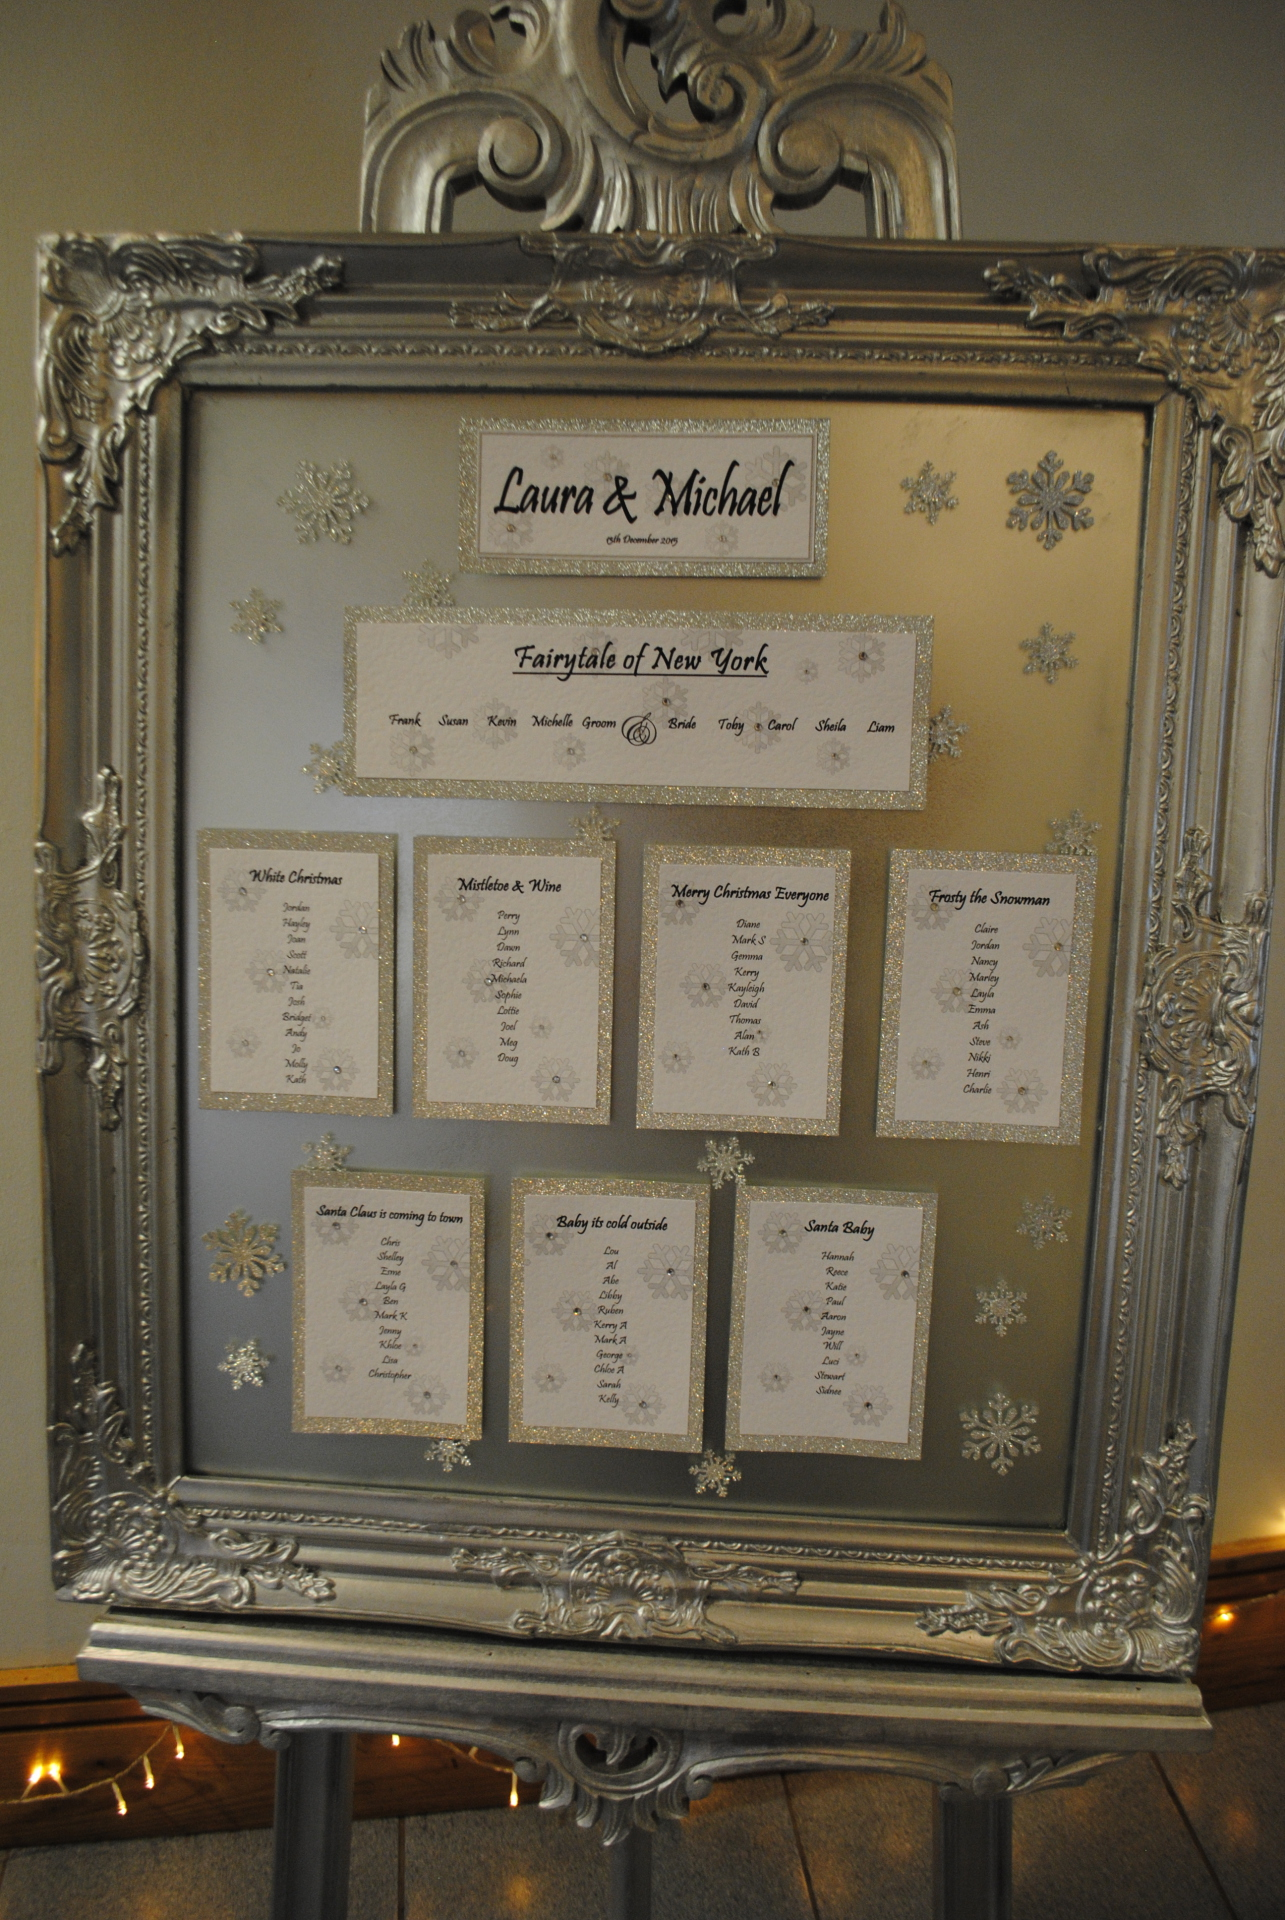 Snowflake table plan with silver glitter card on framed mirror